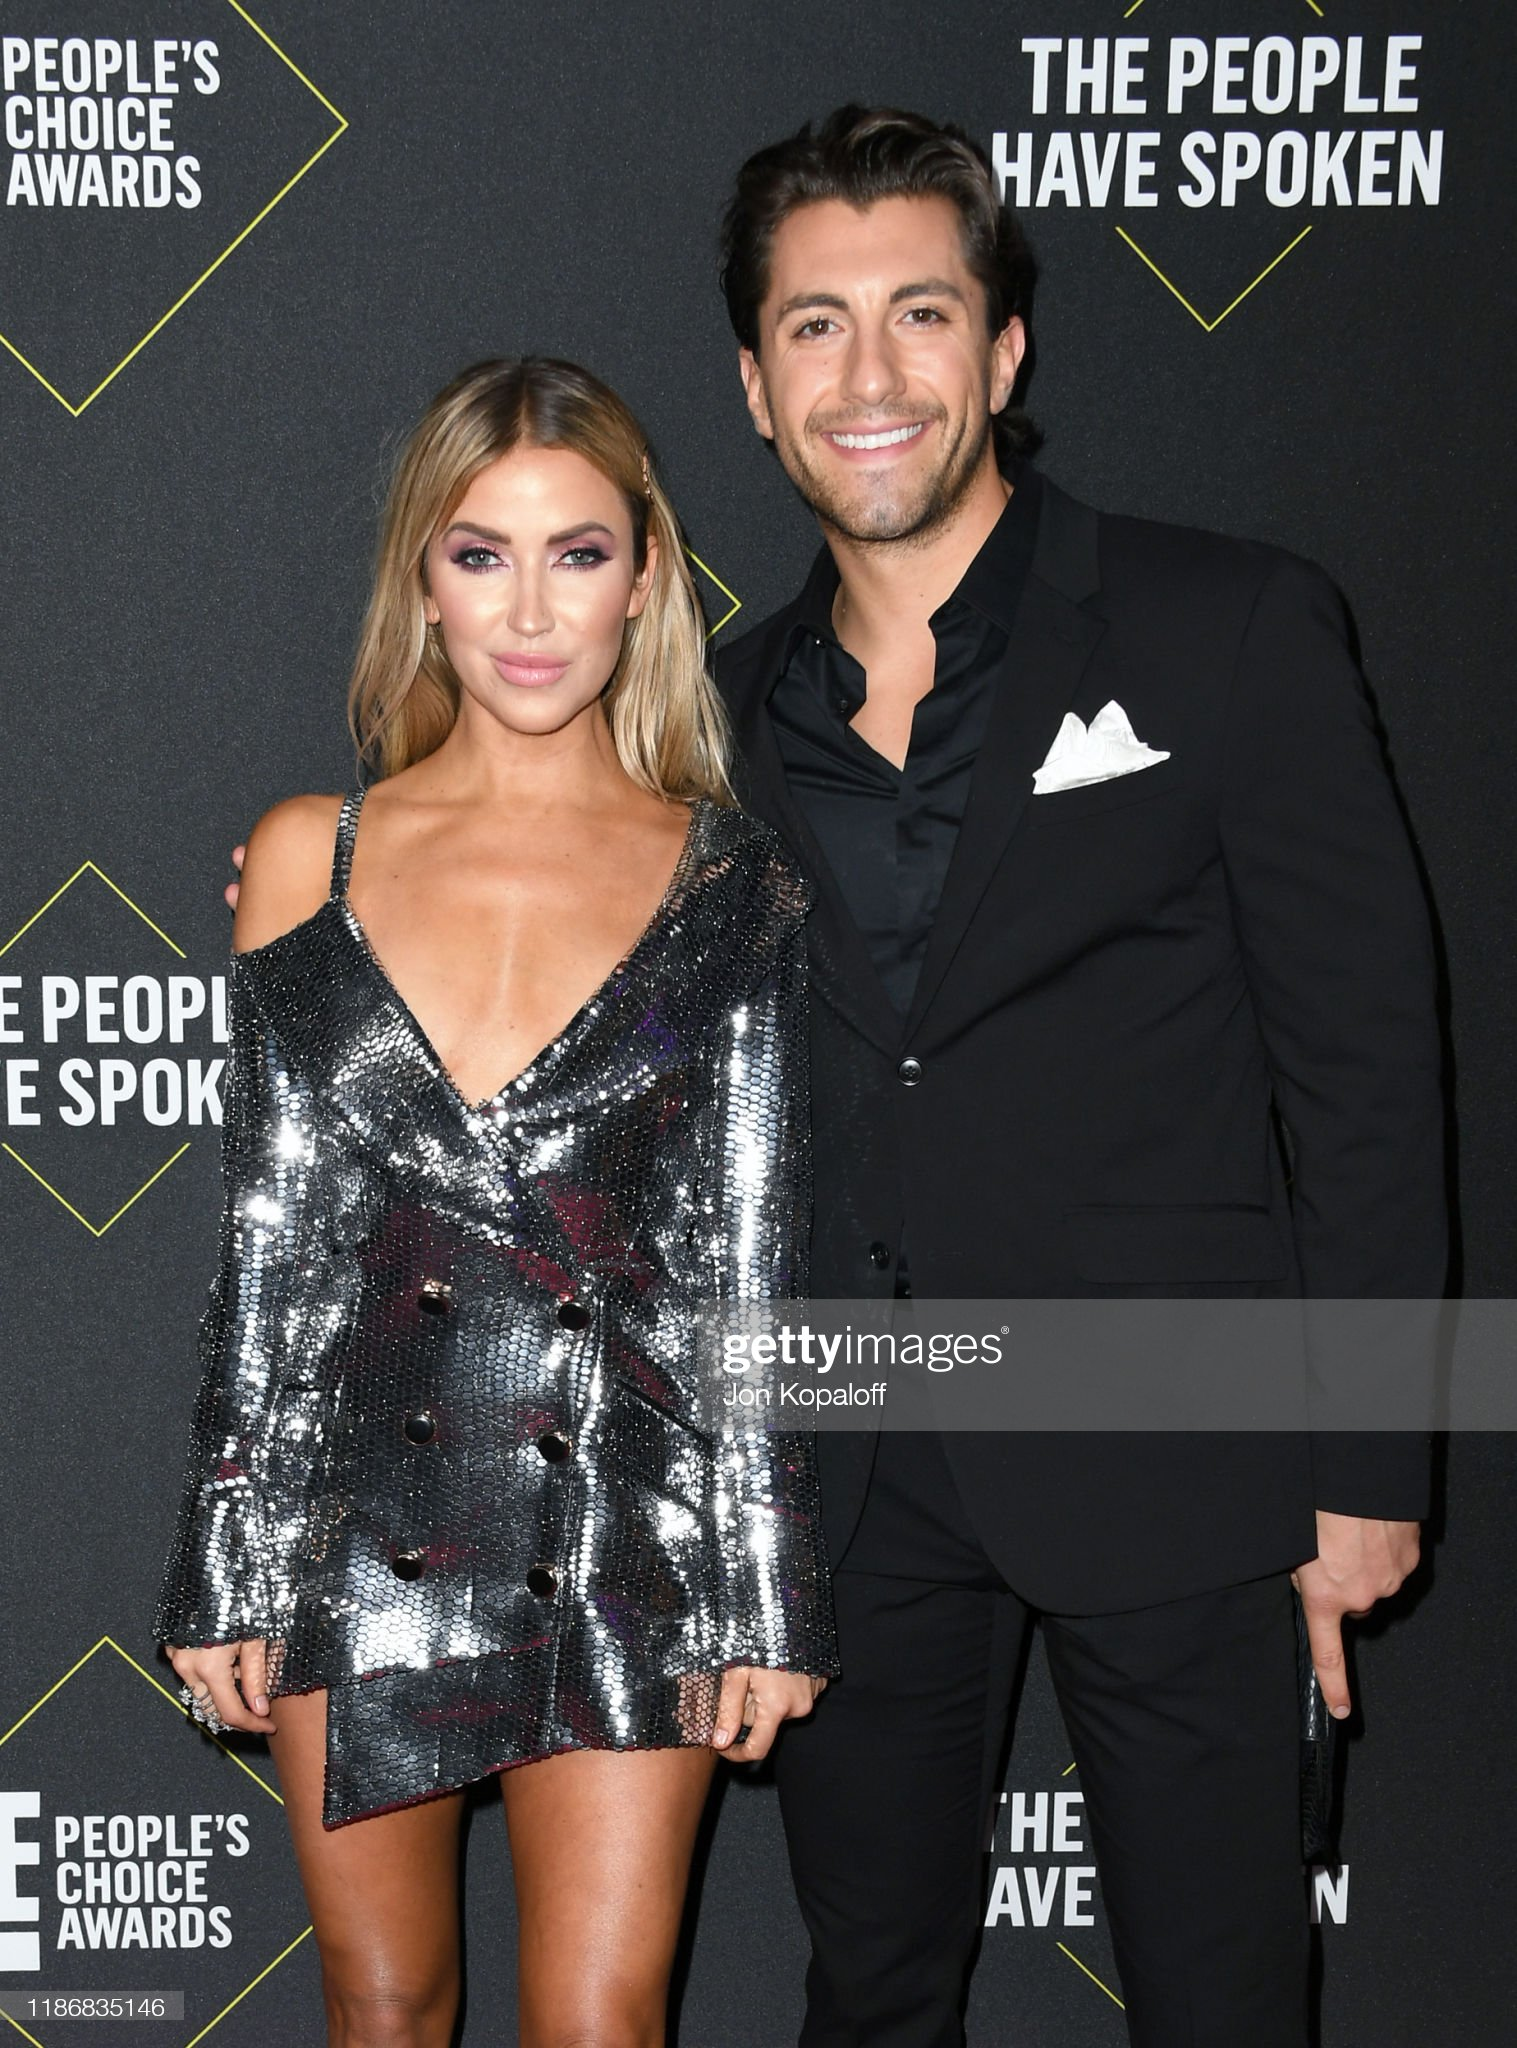 Kaitlyn Bristowe - Jason Tartick - FAN Forum - Discussion  - Page 45 Kaitlyn-bristowe-and-jason-tartick-attend-the-2019-e-peoples-choice-picture-id1186835146?s=2048x2048